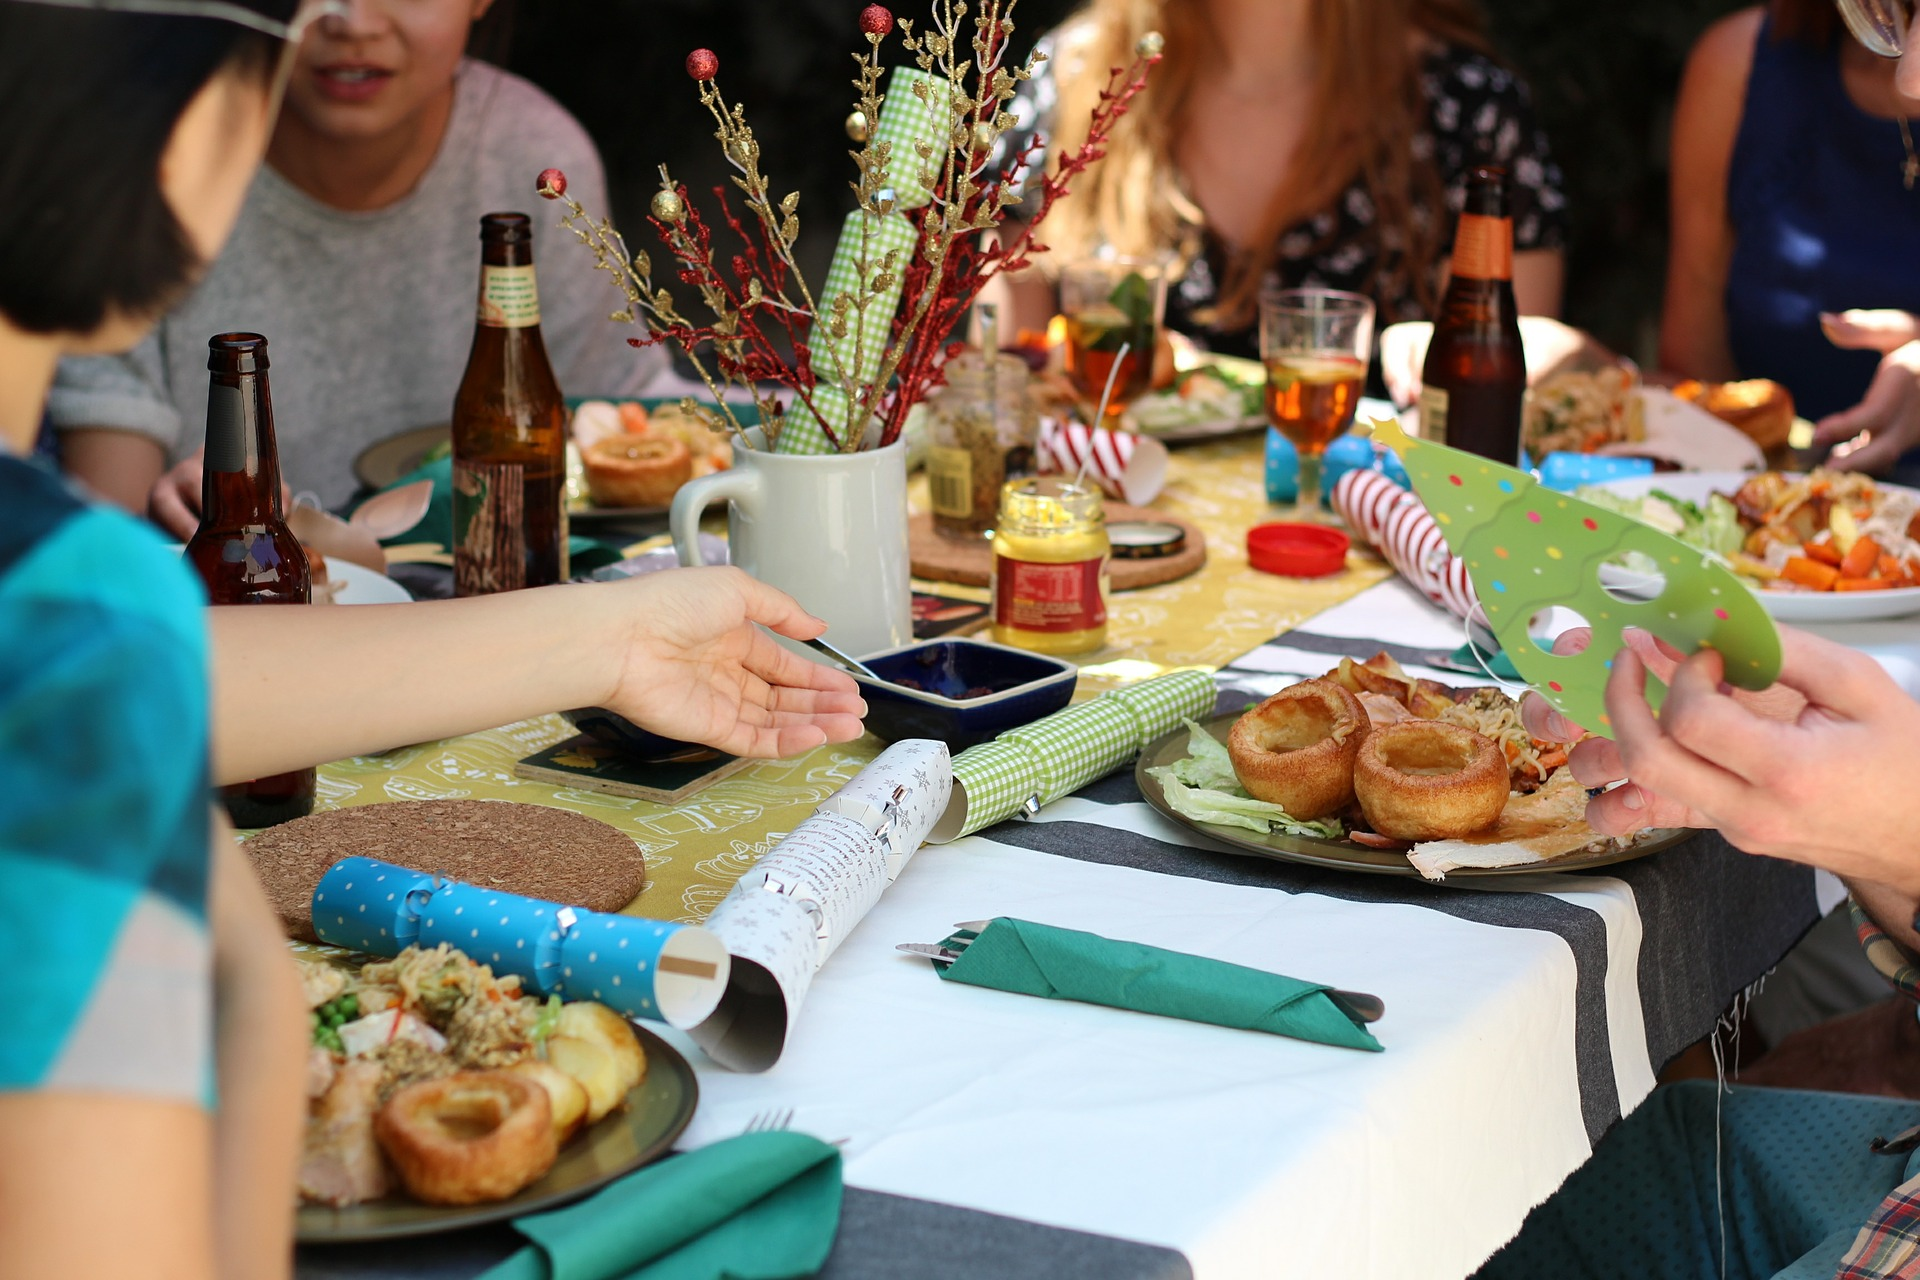 How to be a good party guest when you're paleo